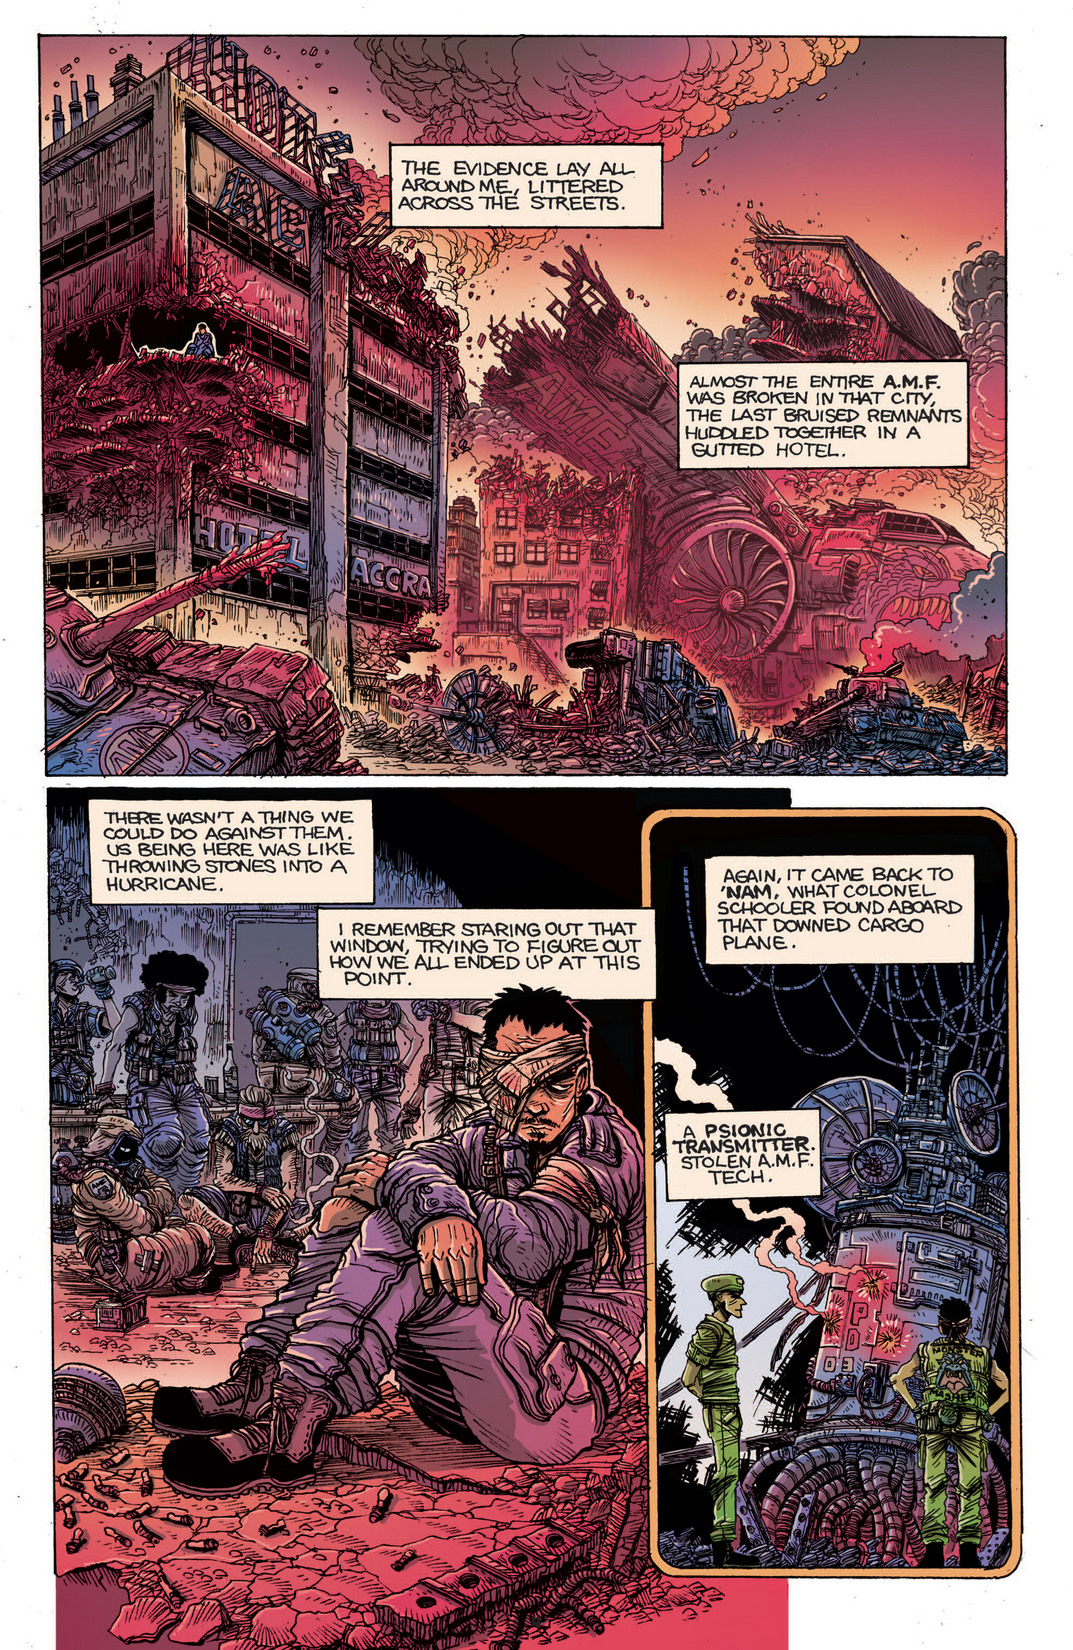 HALF-CENTURY WAR Issue 3 - Page 4.jpg